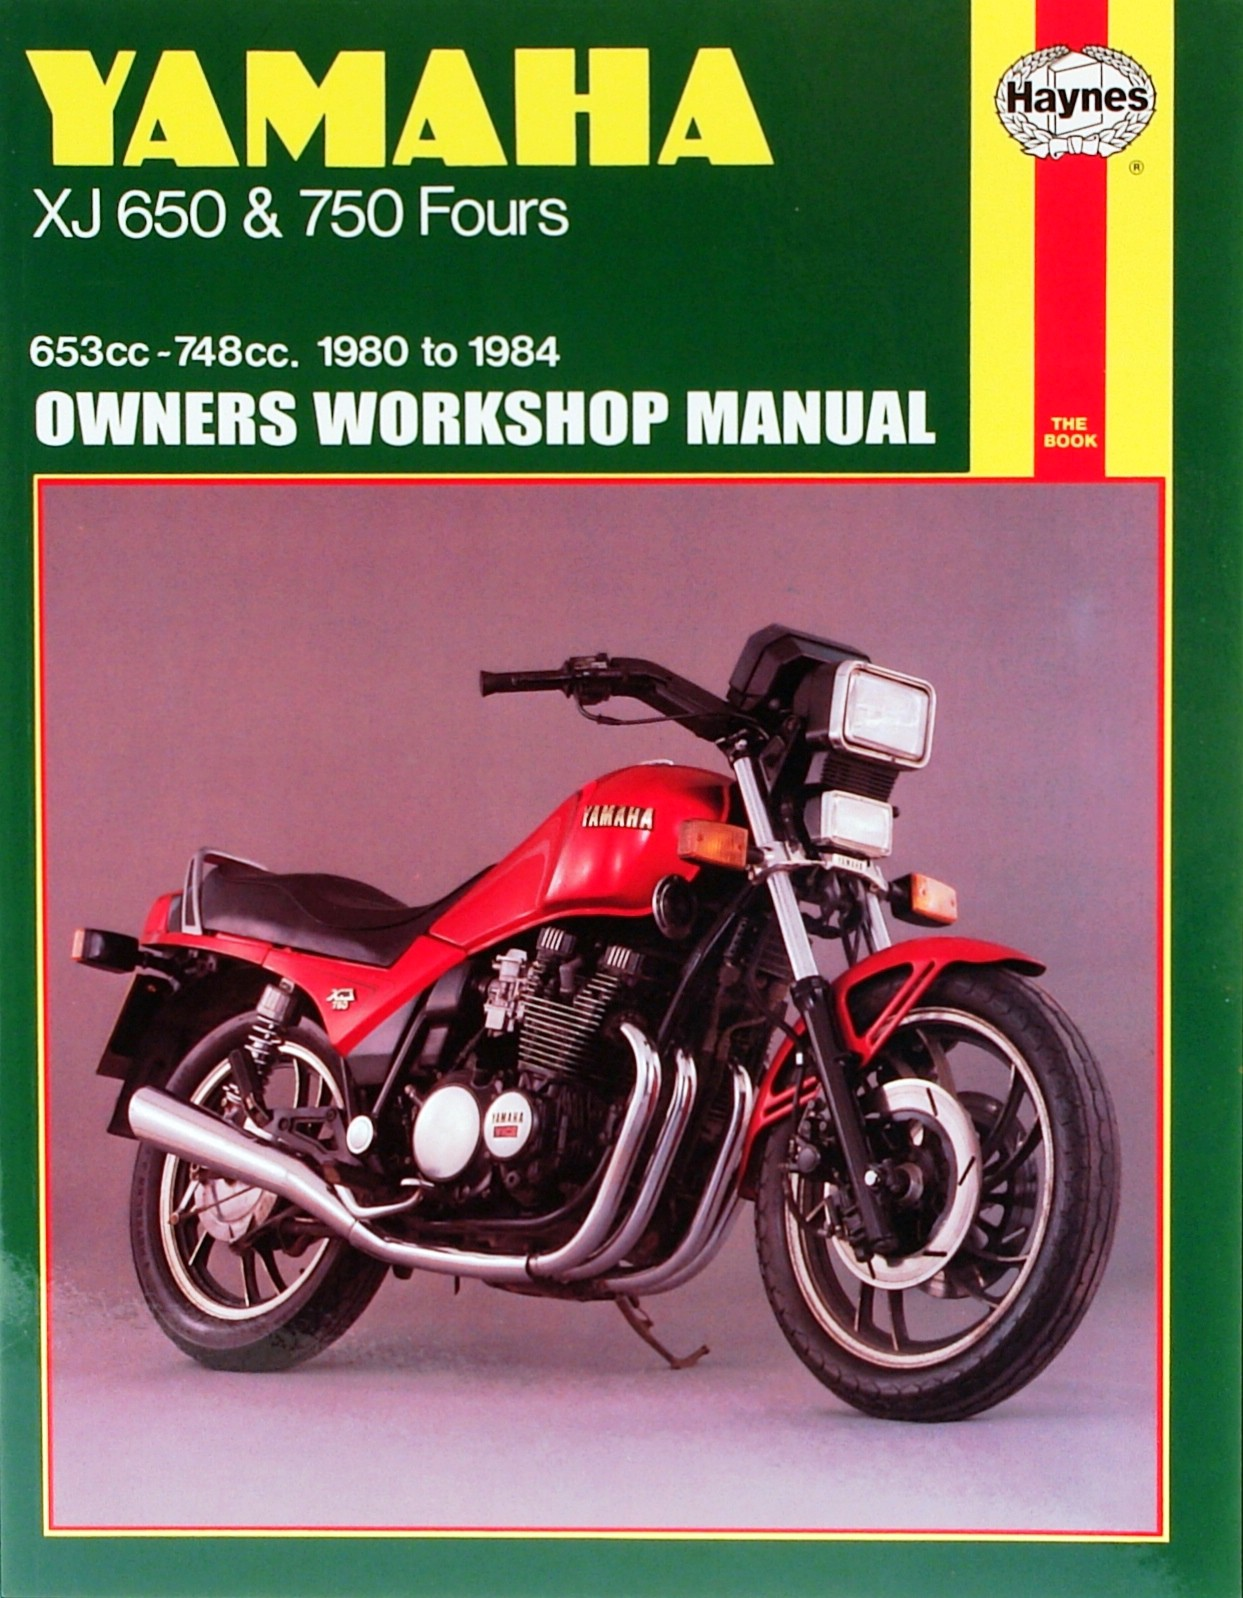 1982 Yamaha Xj650 Turbo Repair Manual Wiring Diagram Xj 650 Europe Manuals Haynes Each Ebay Rh Co Uk Seca